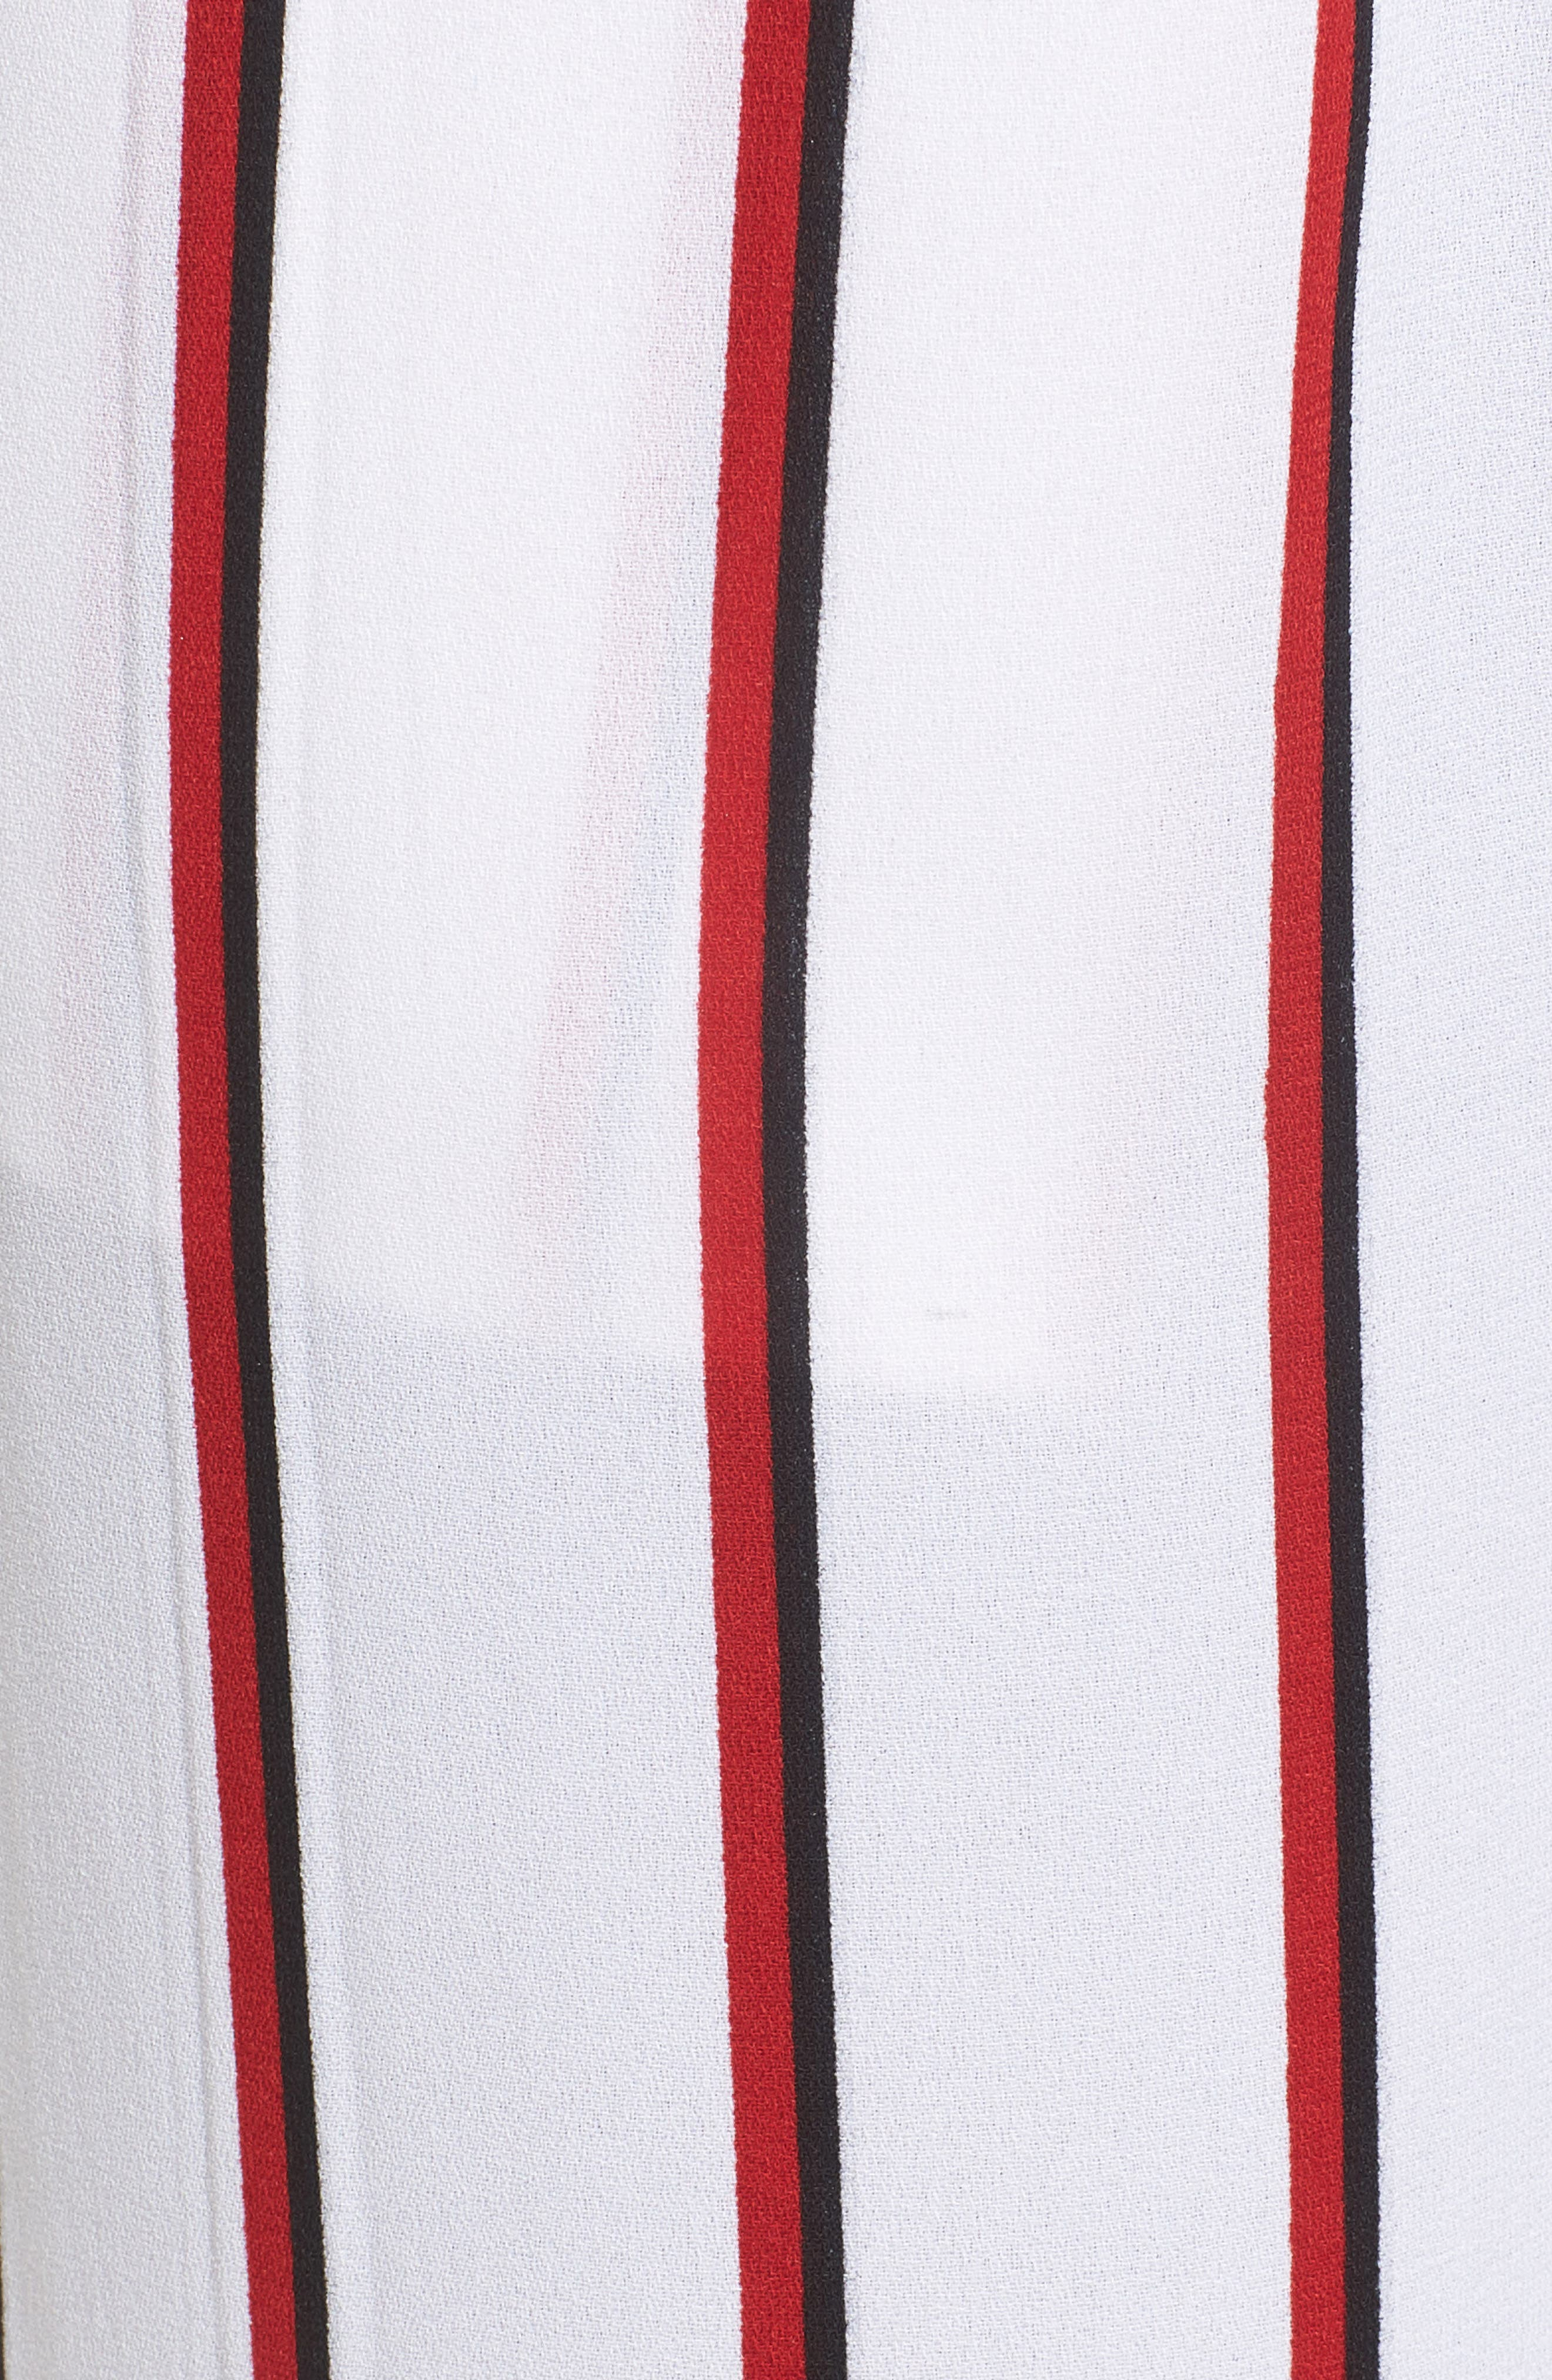 Counting Moons Stripe Culottes,                             Alternate thumbnail 5, color,